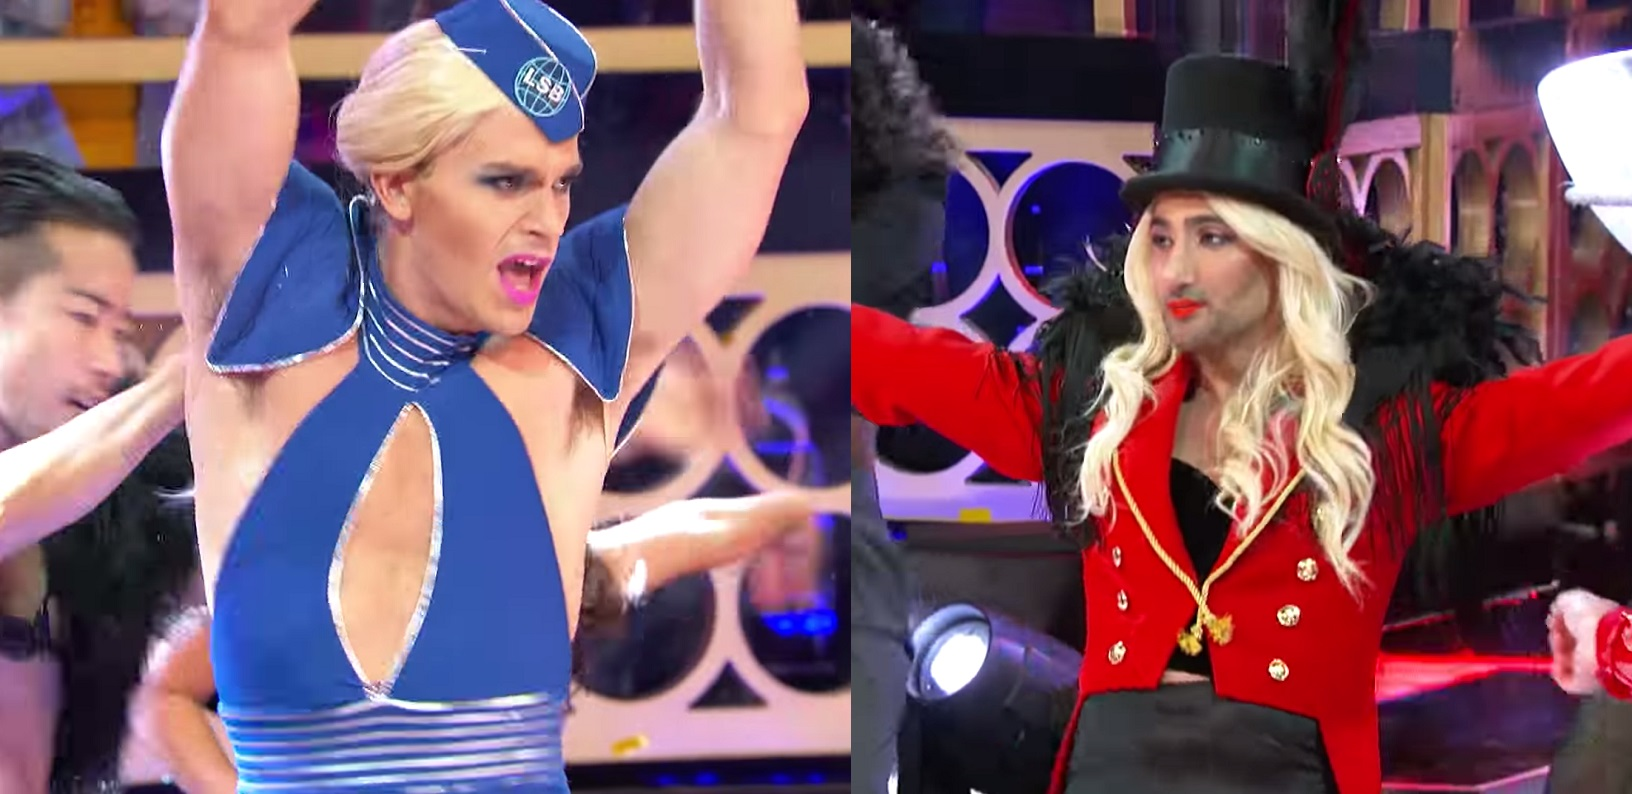 Antoni Porowski and Tan France on Lip Sync Battle.